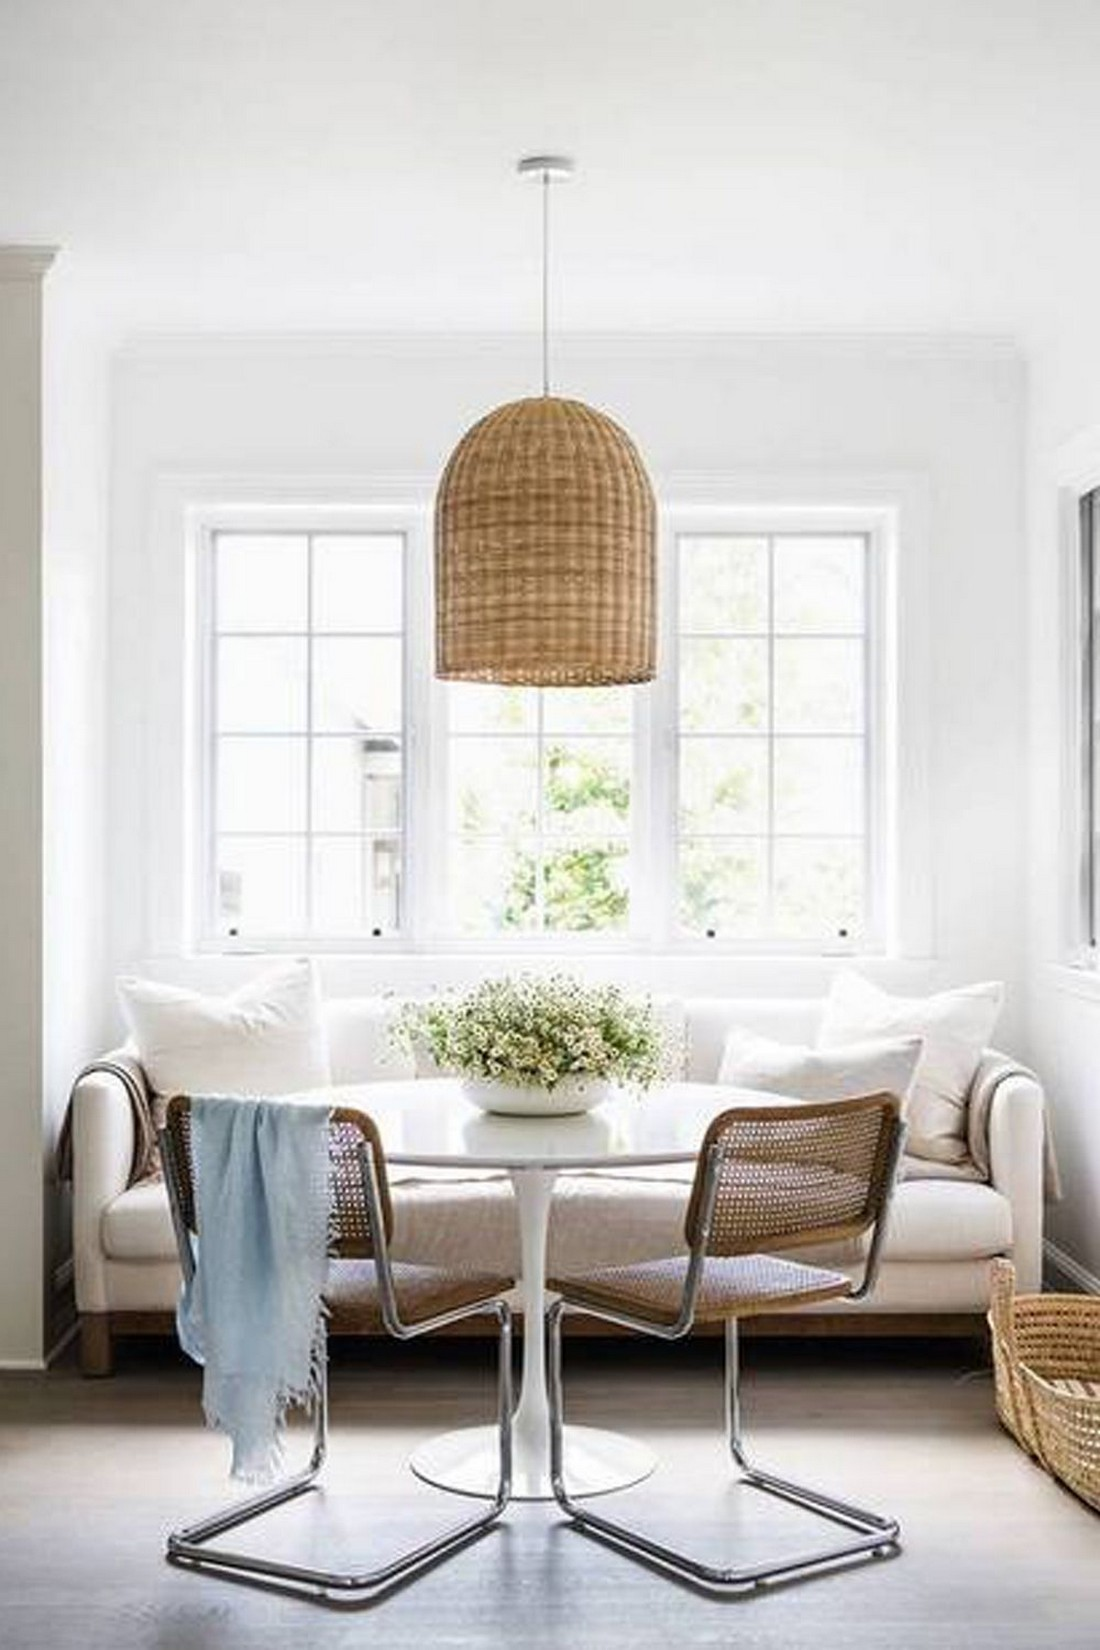 86 Different Types Of Dining Chairs Home Decor 4